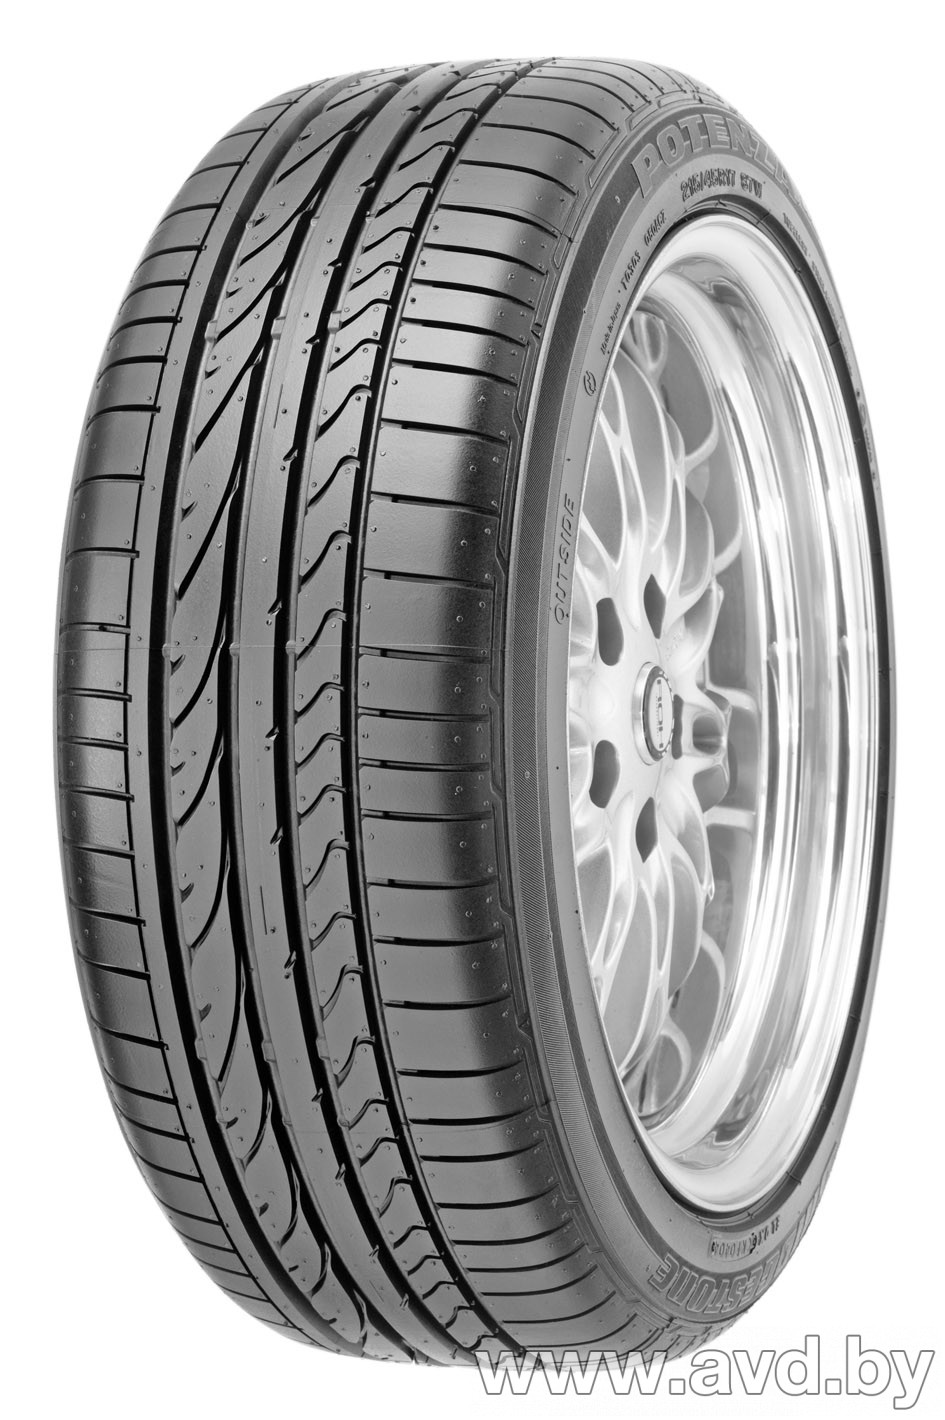 Купить Шины Bridgestone Potenza RE050A 275/35R18 95Y (run-flat)  в Минске.